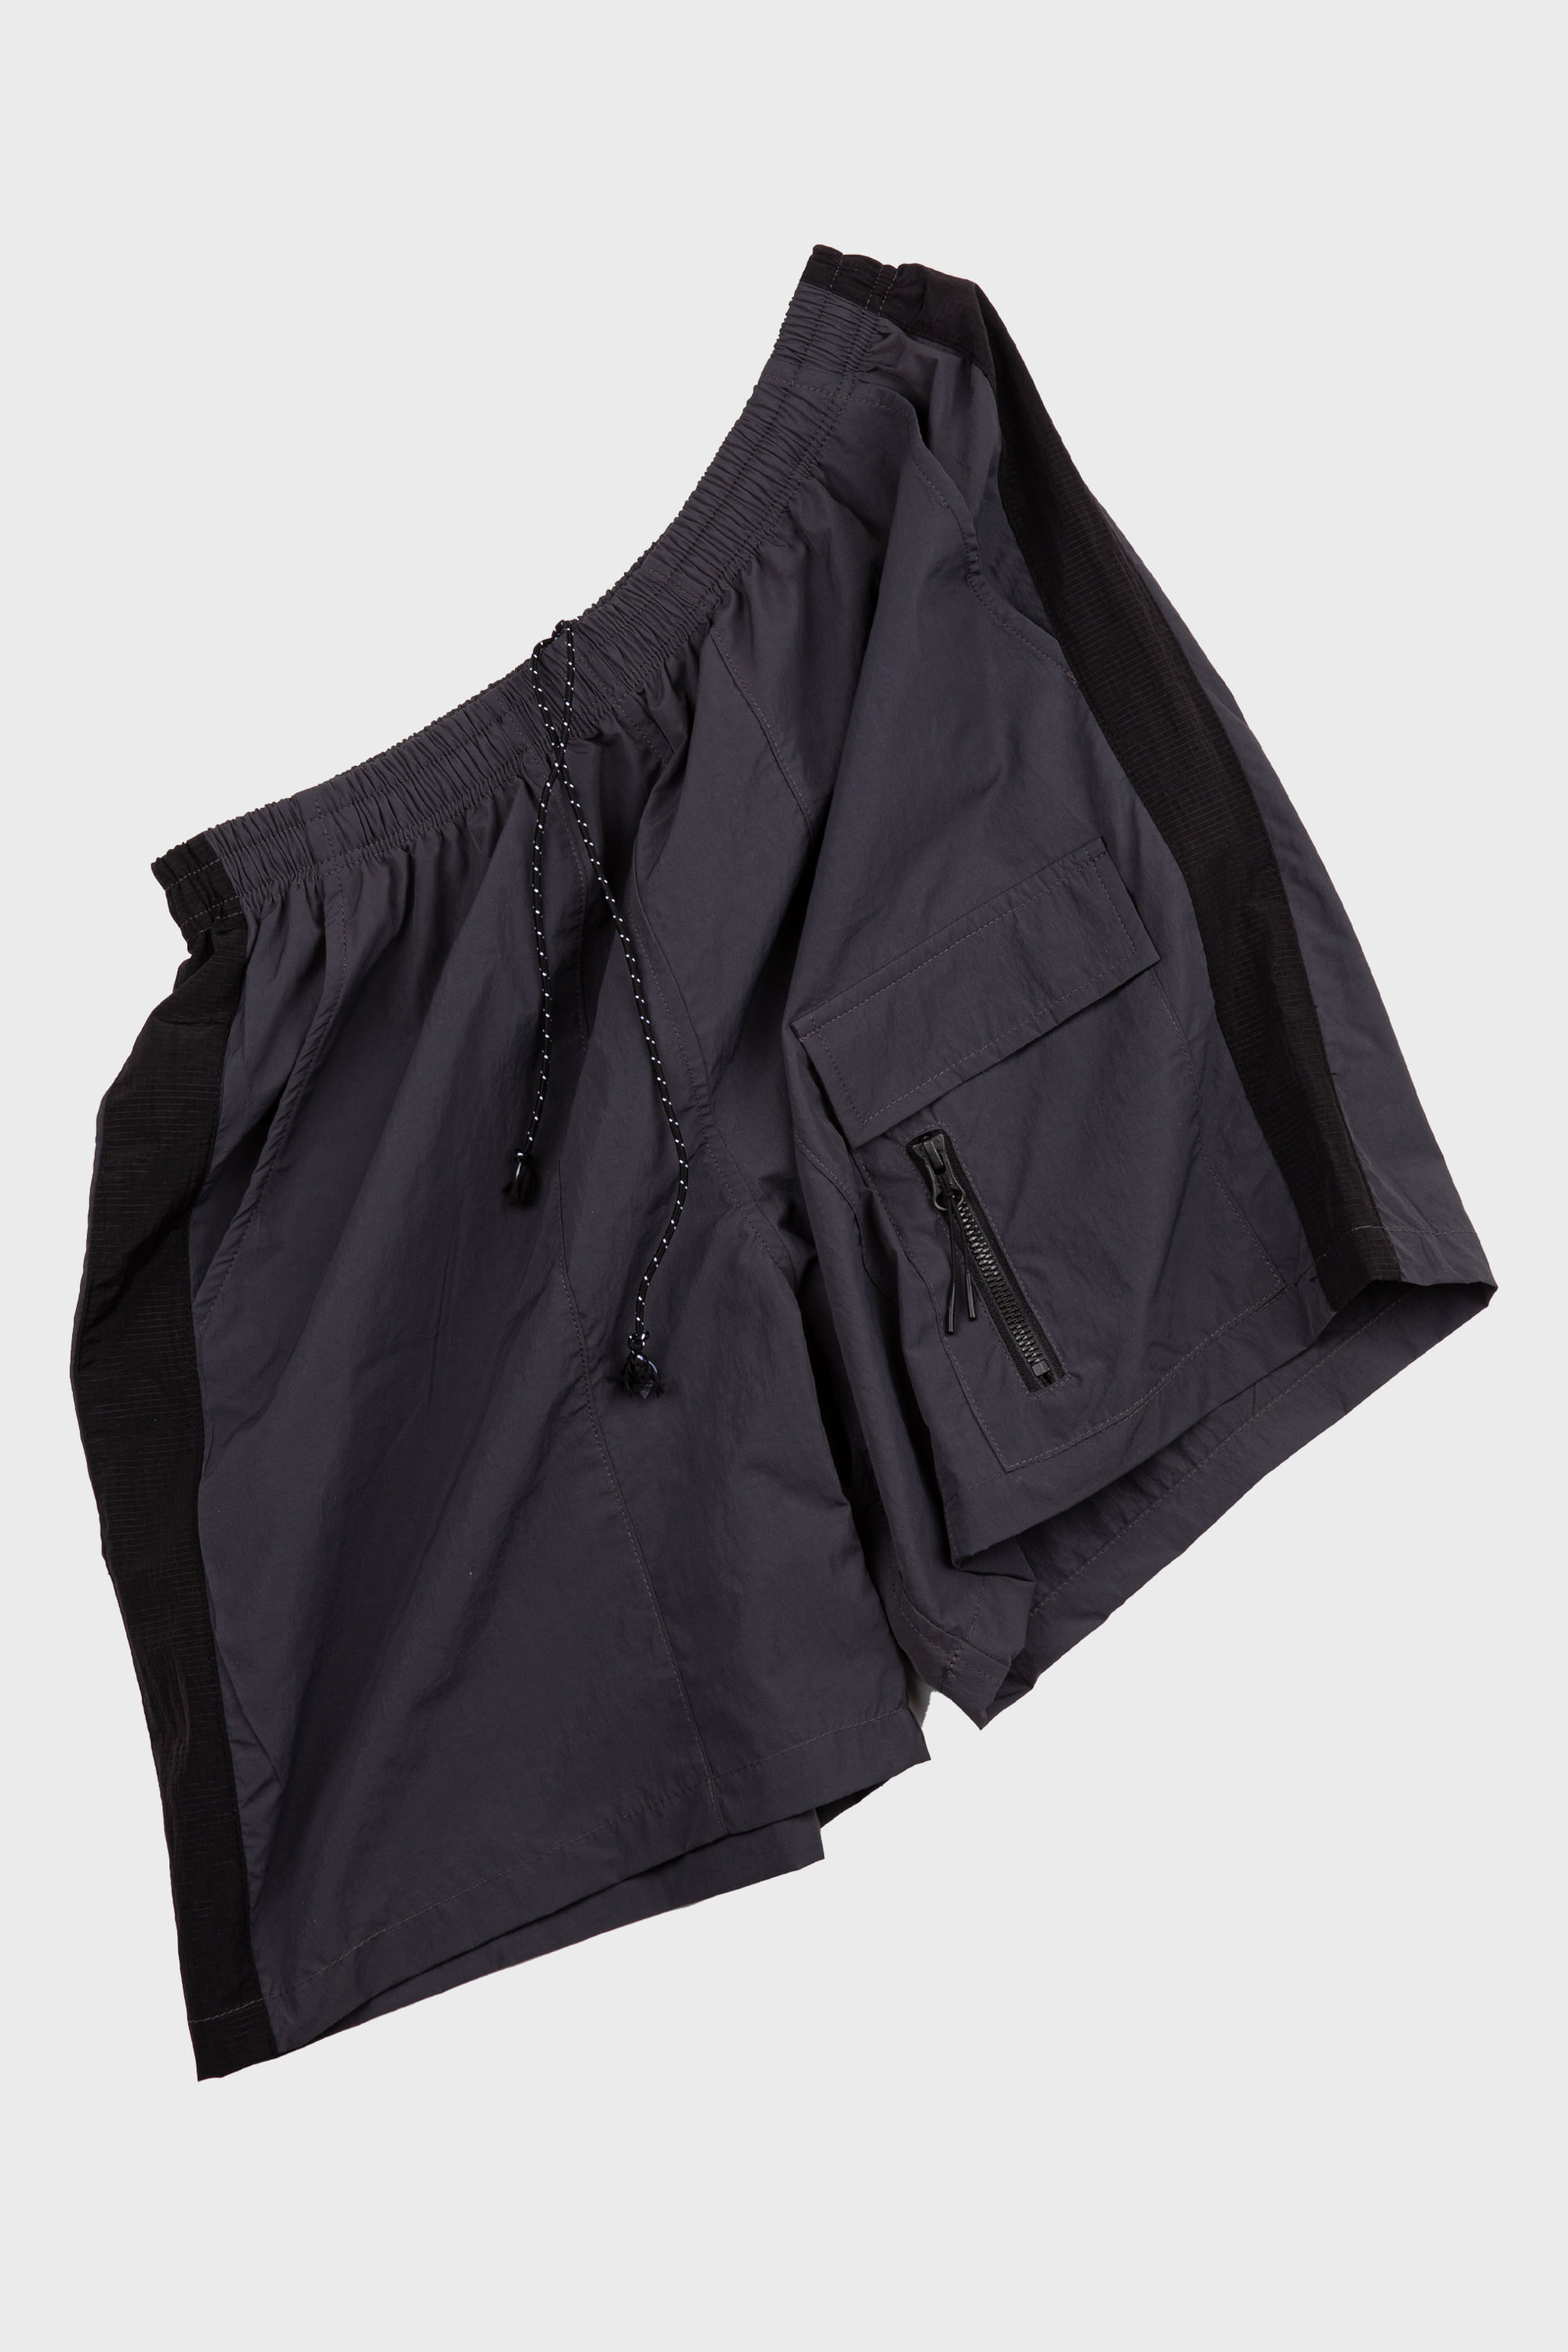 -[COLDWARM] NYLON POKET SHORTS- CHARCOAL